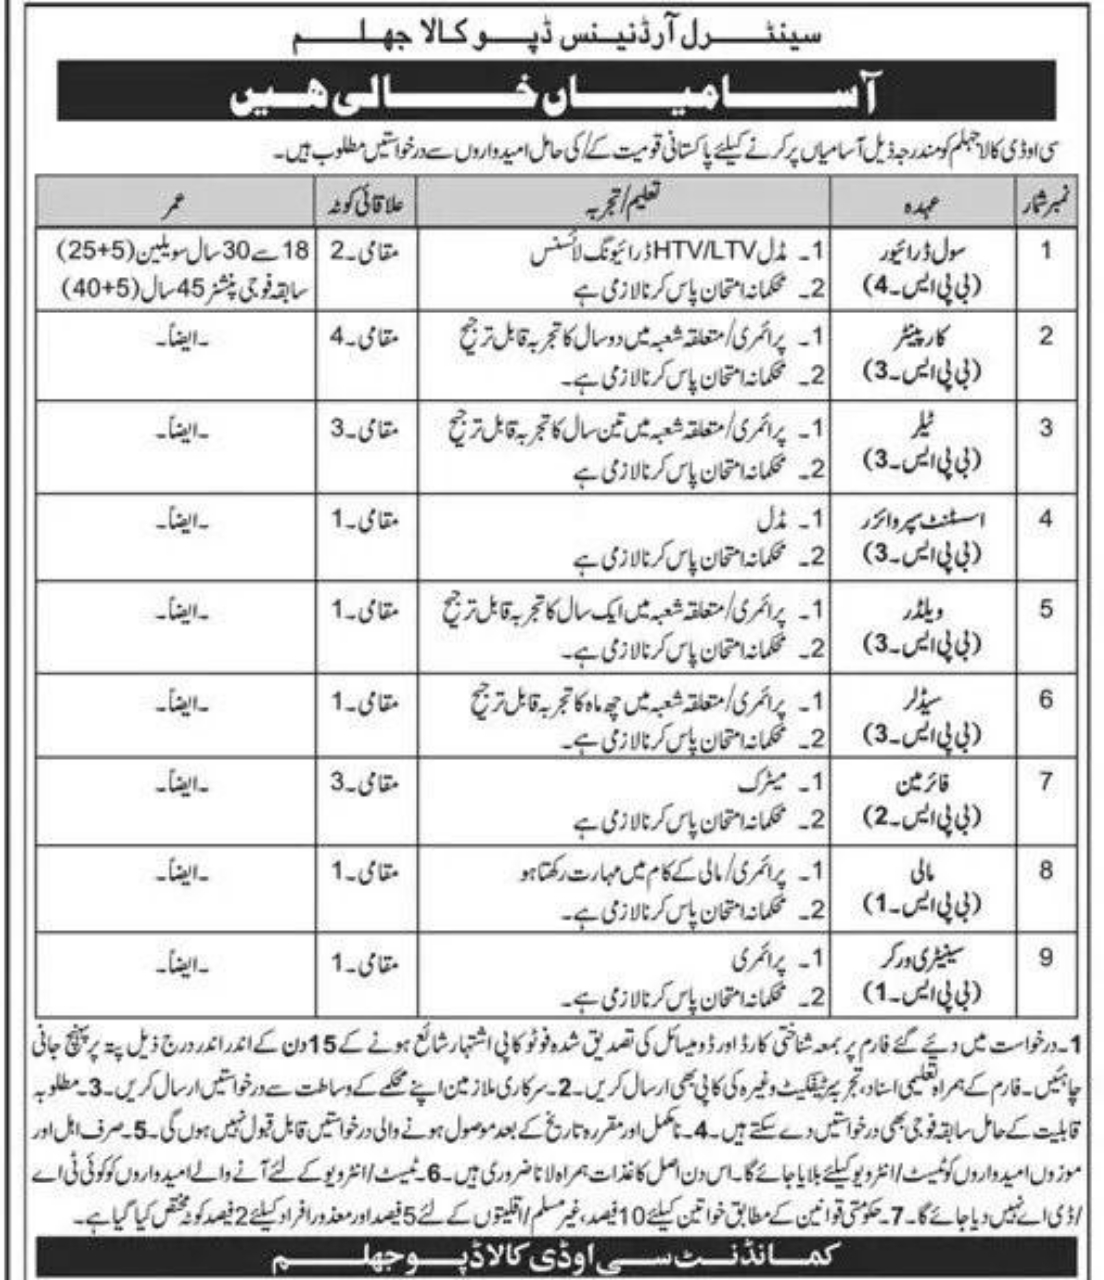 COD Kala Jhelum New Jobs 2020